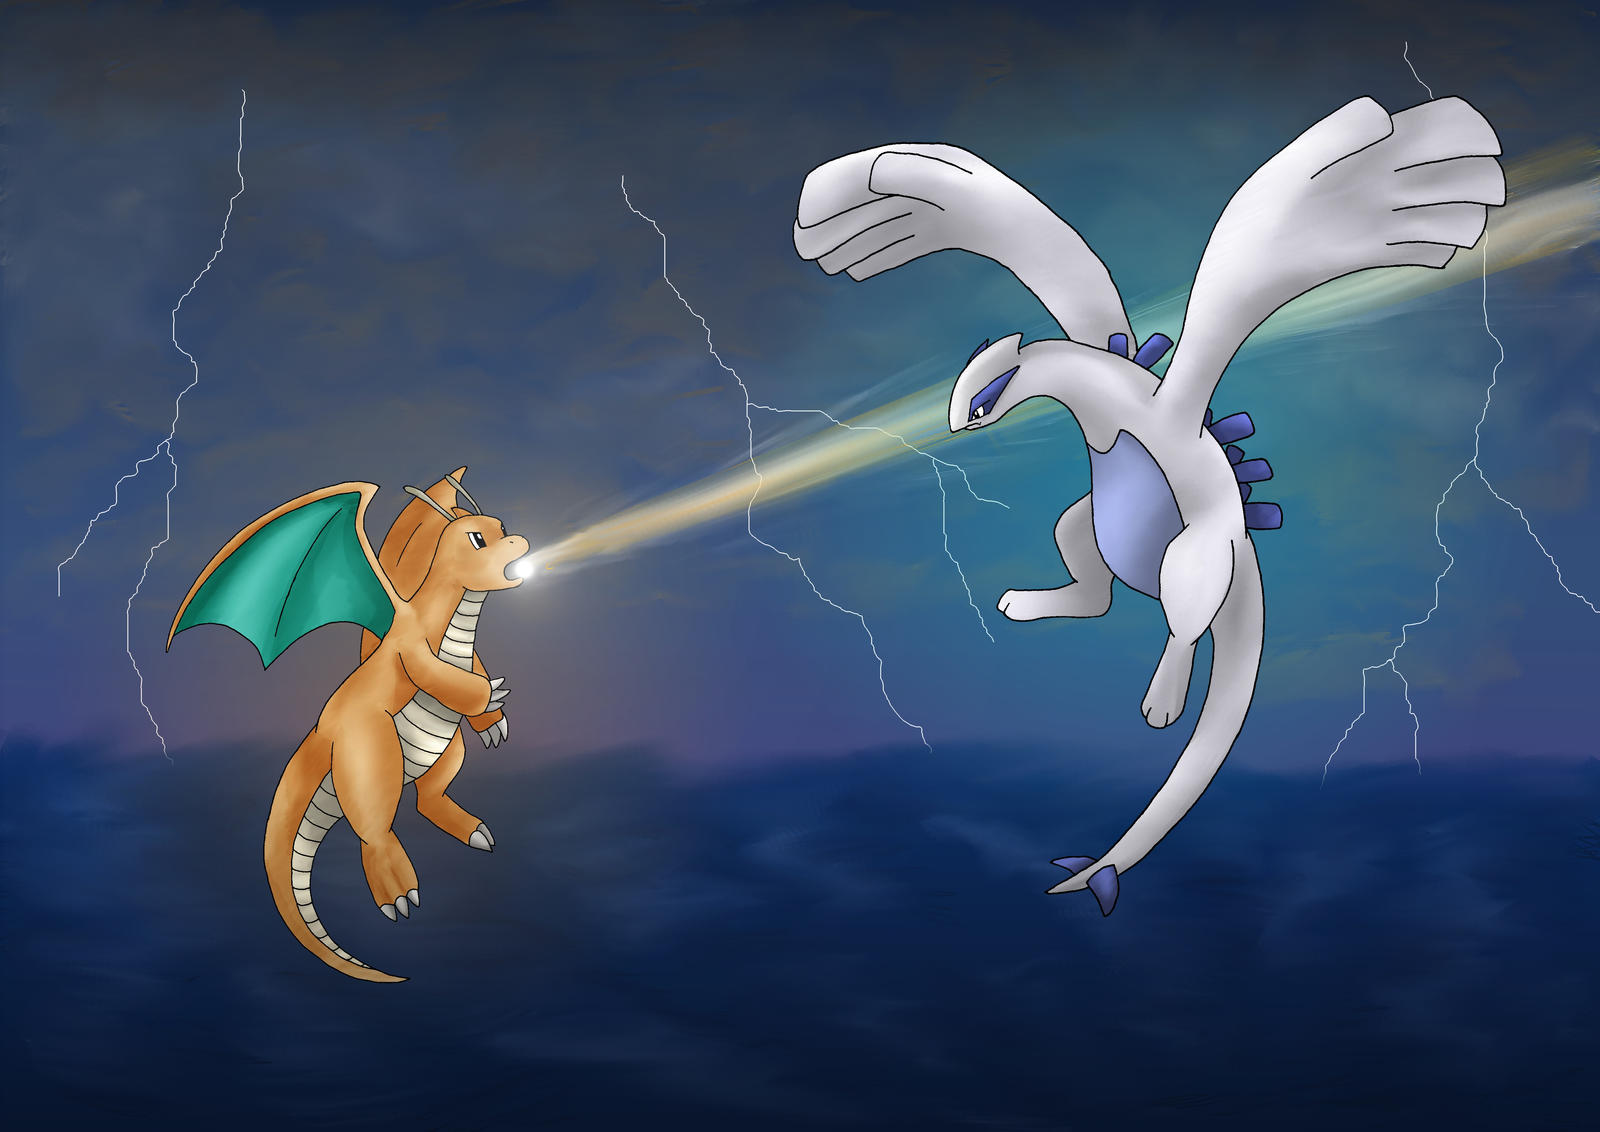 Dragonite vs. Lugia by artisticpuppy on DeviantArt